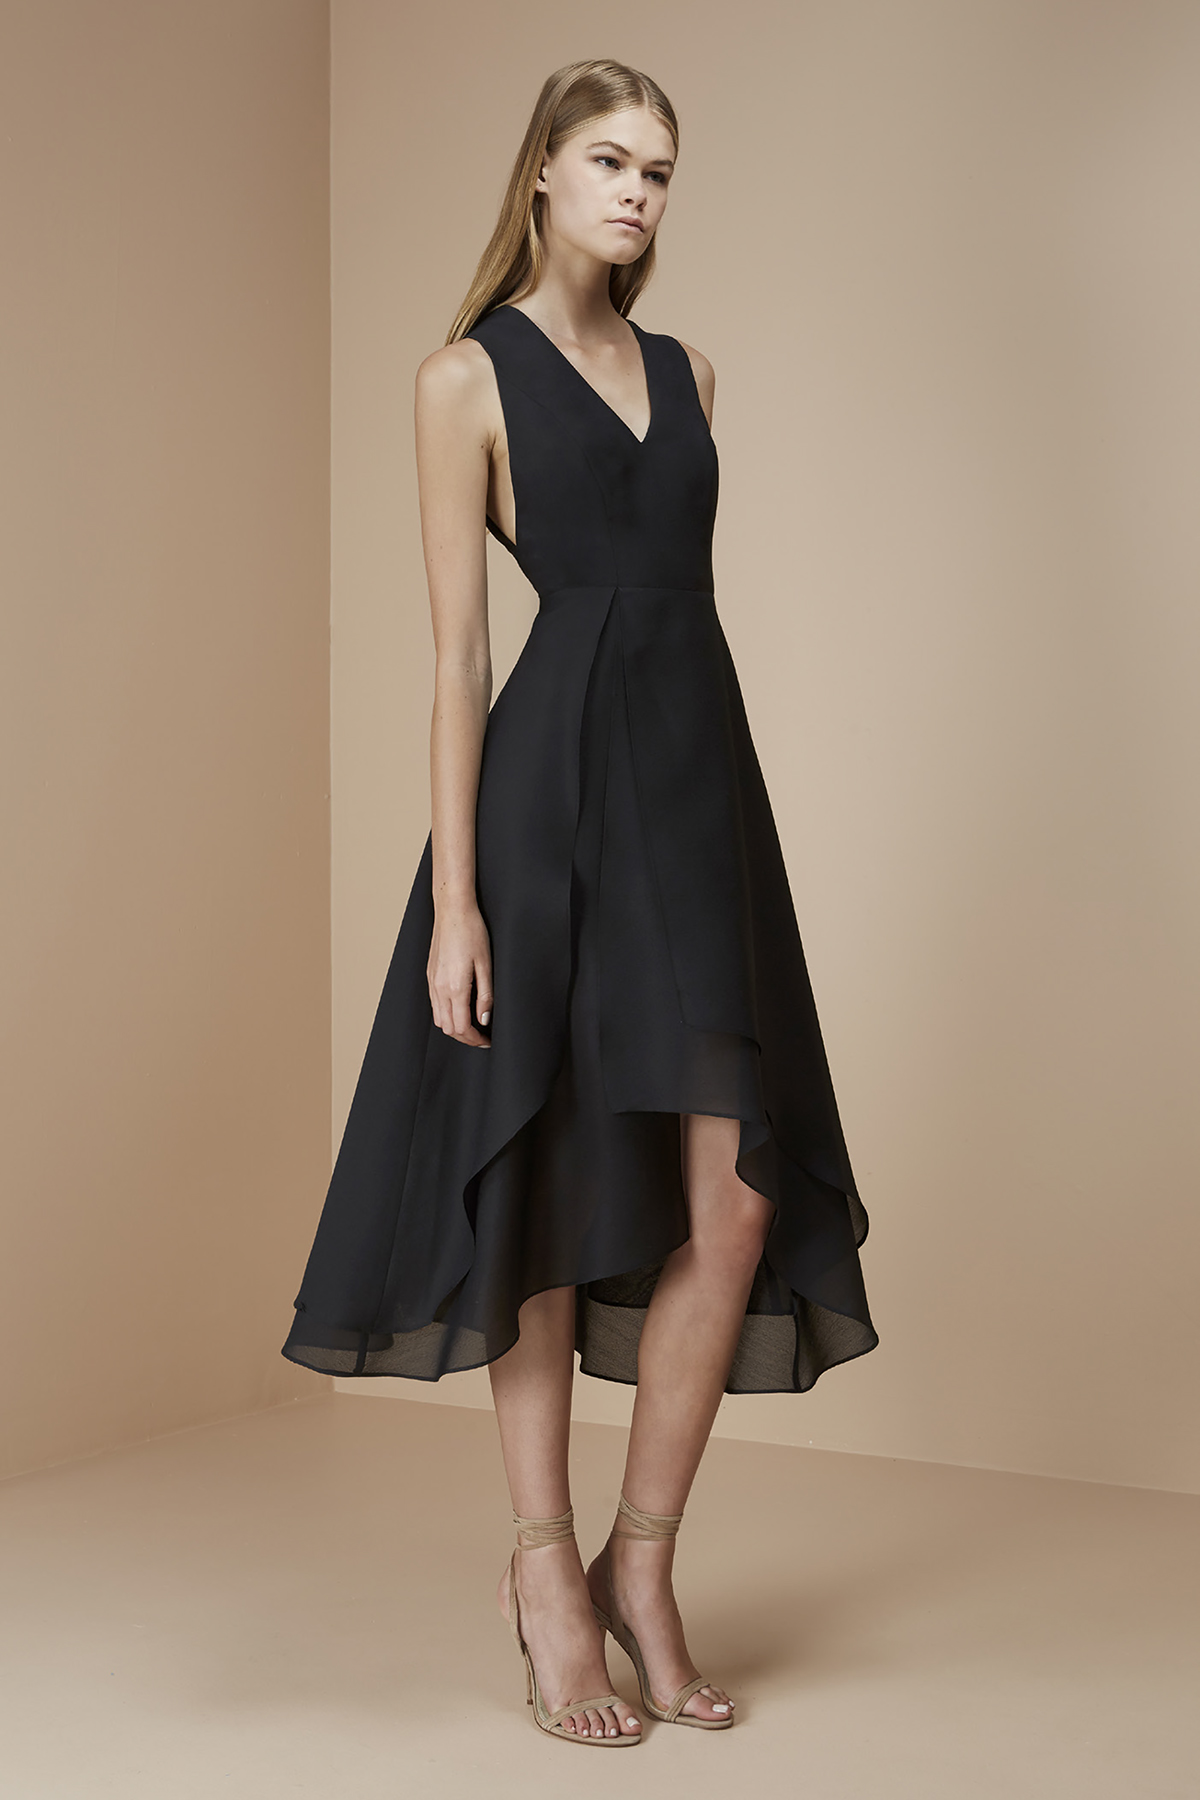 Shop Keepsake All Rise Dress.